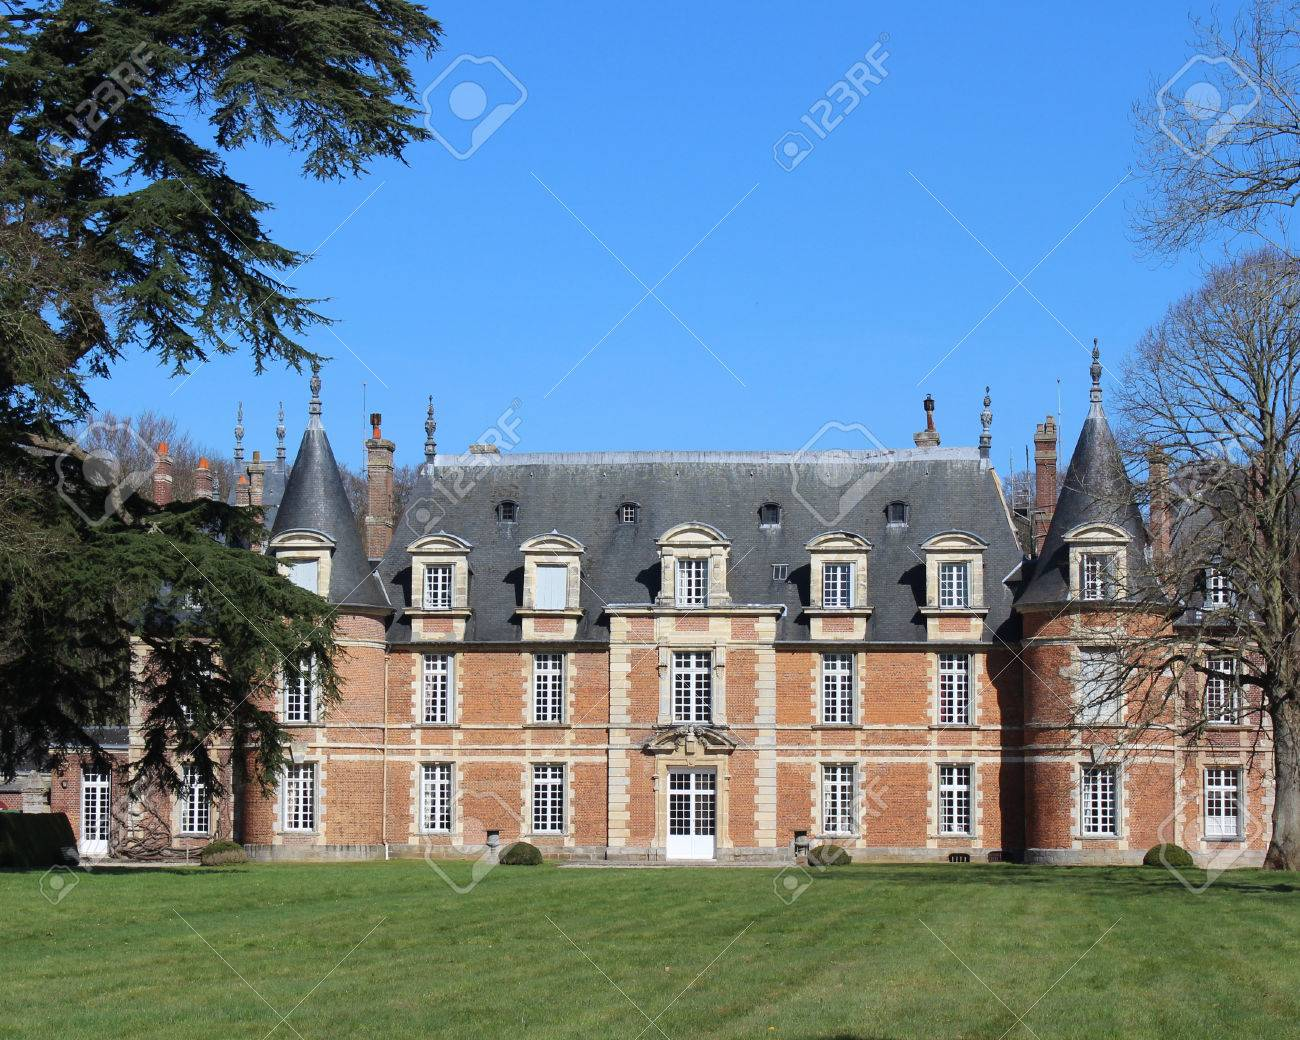 16th Century French Home - 56457023-dieppe-france-april-1-2016-exterior-view-chateau-de-miromesnil-a-16th-century-castle-situated-near-d_Wonderful 16th Century French Home - 56457023-dieppe-france-april-1-2016-exterior-view-chateau-de-miromesnil-a-16th-century-castle-situated-near-d  Picture_8510012.jpg